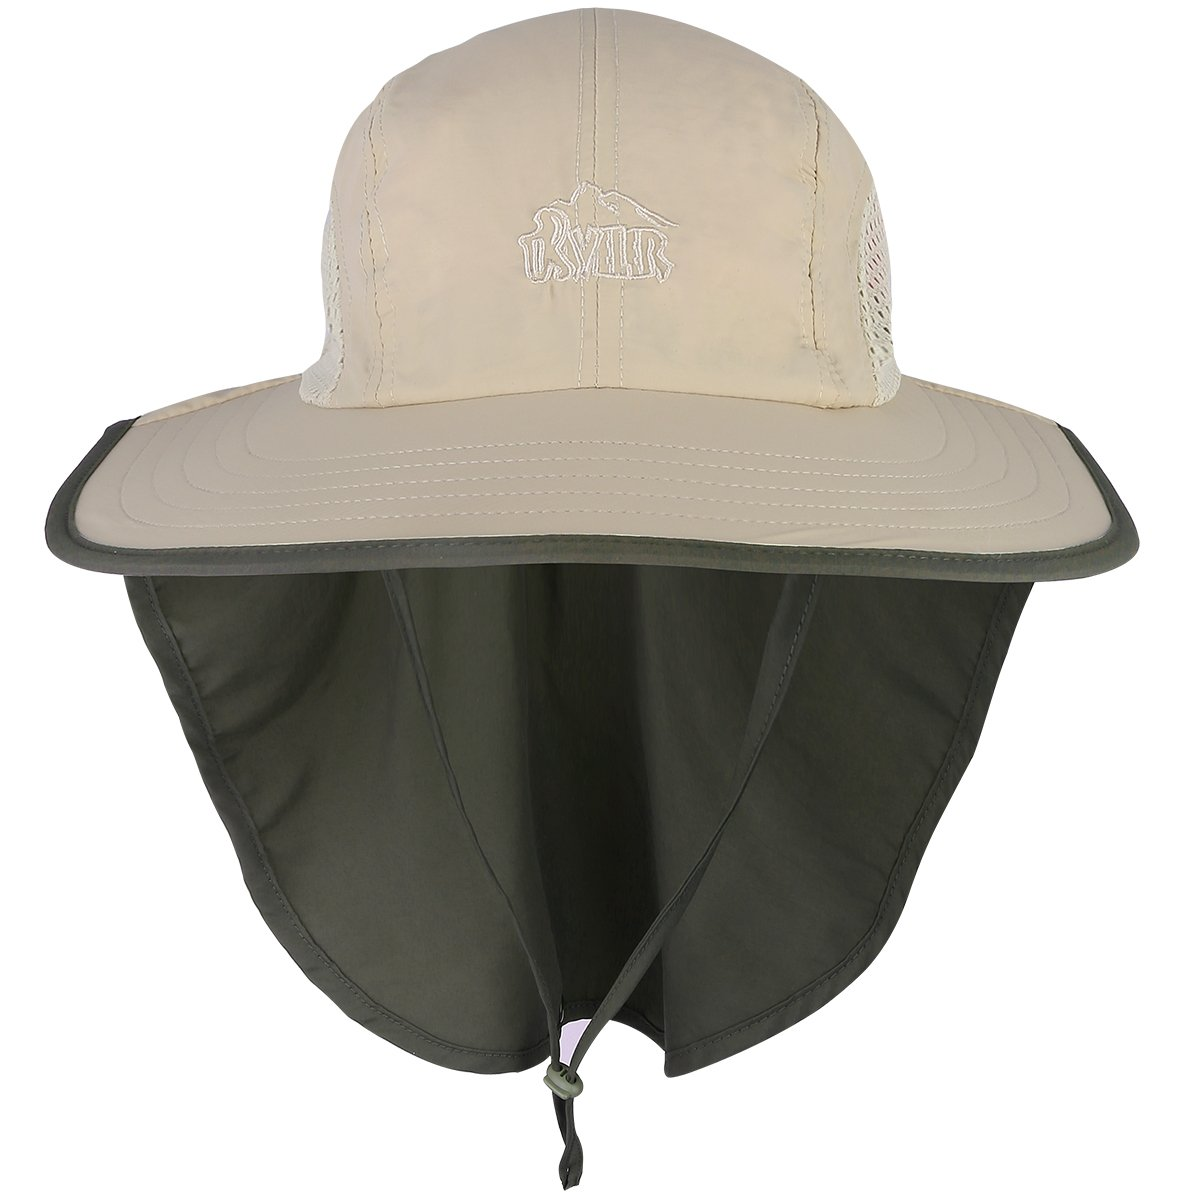 826e8a095a8 Best Rated in Fishing Hats   Helpful Customer Reviews - Amazon.com